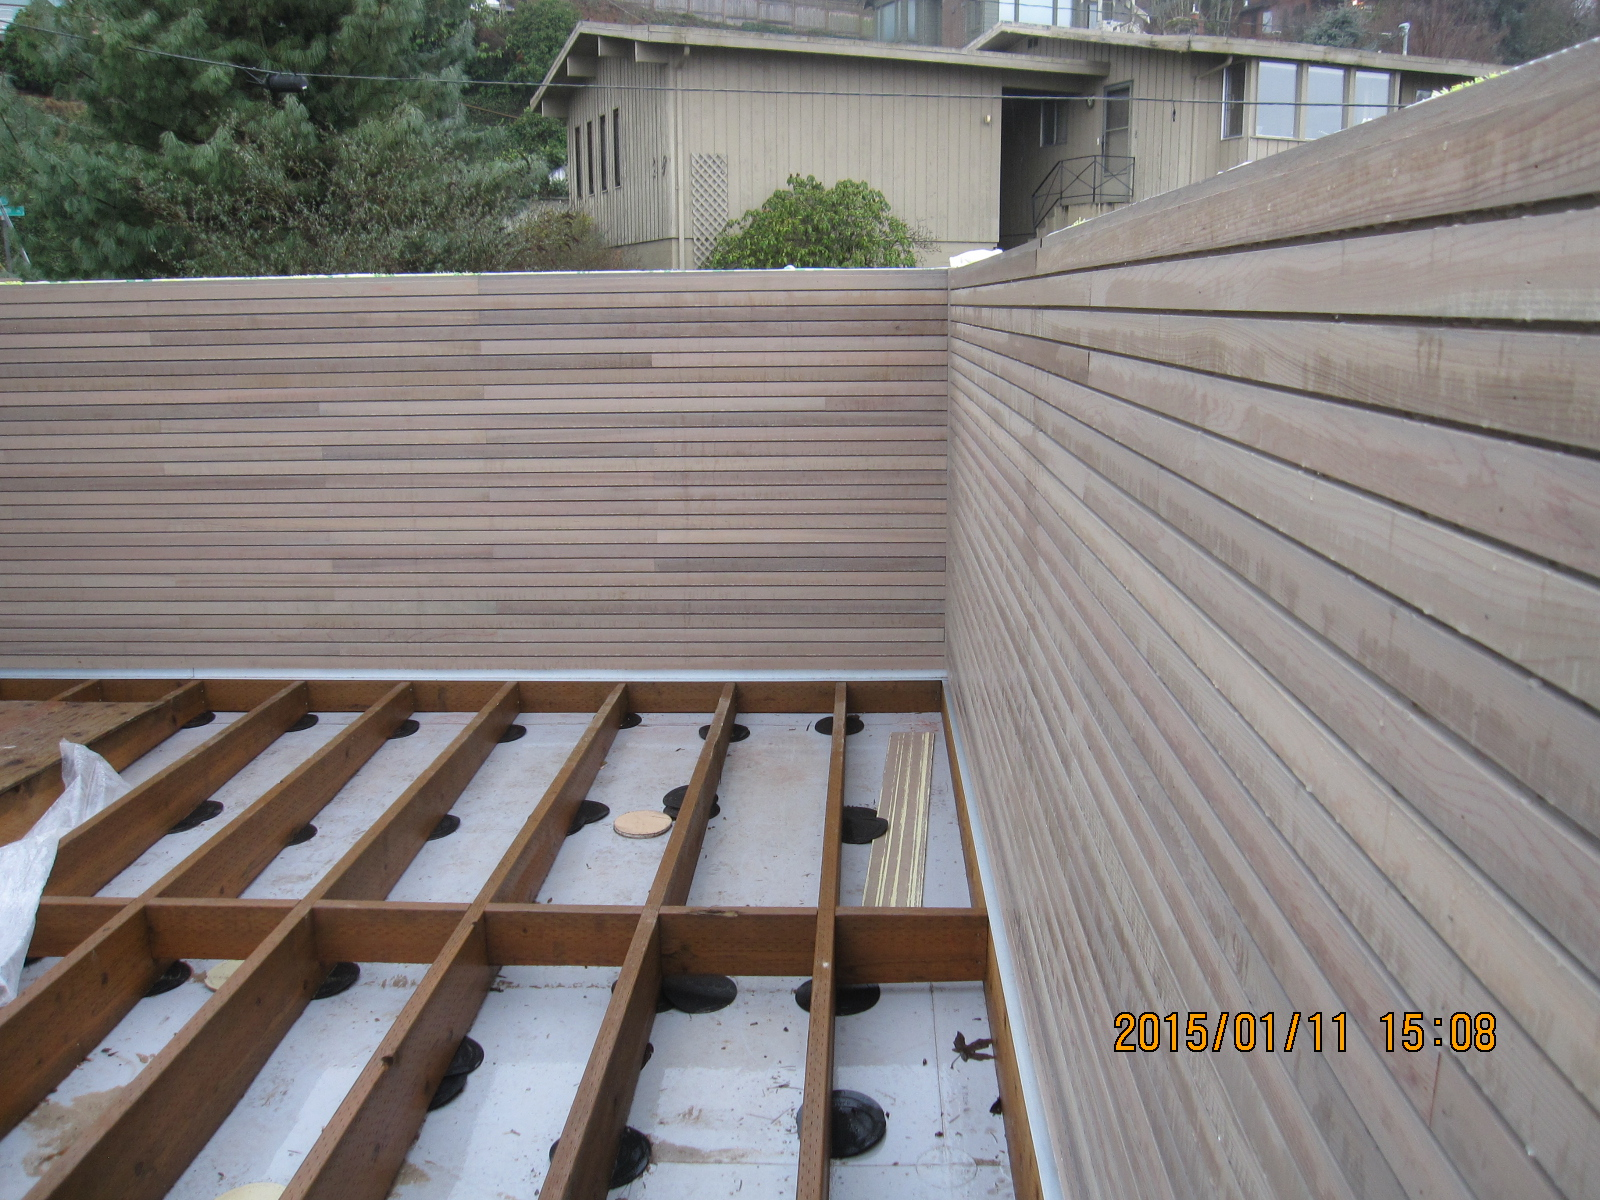 Western Read Cedar Shiplap Siding at new Deck